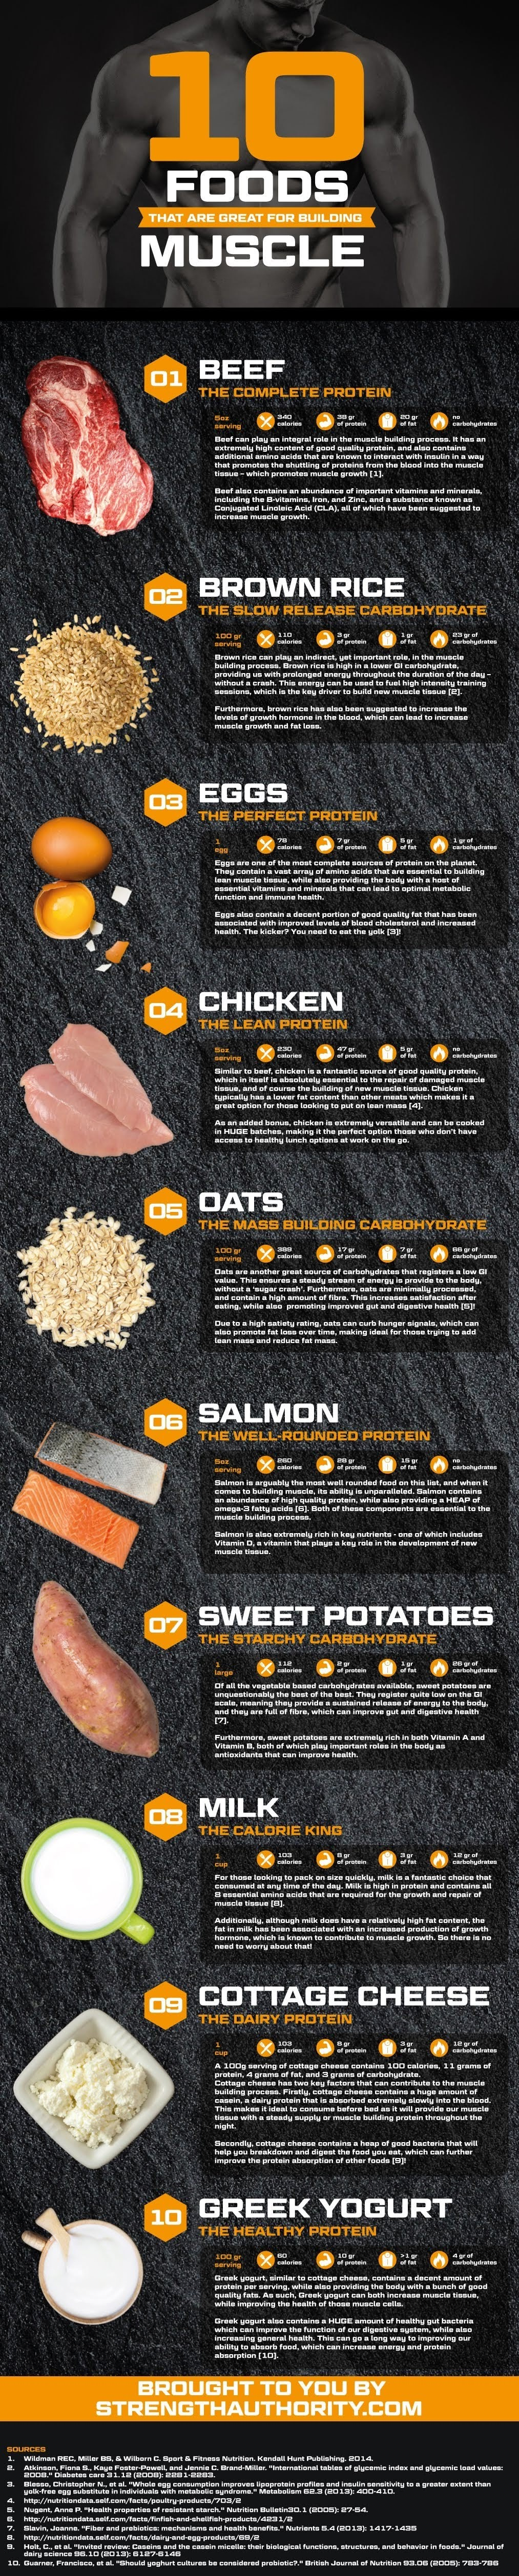 10 Foods That Are Great For Building Muscle #infographic